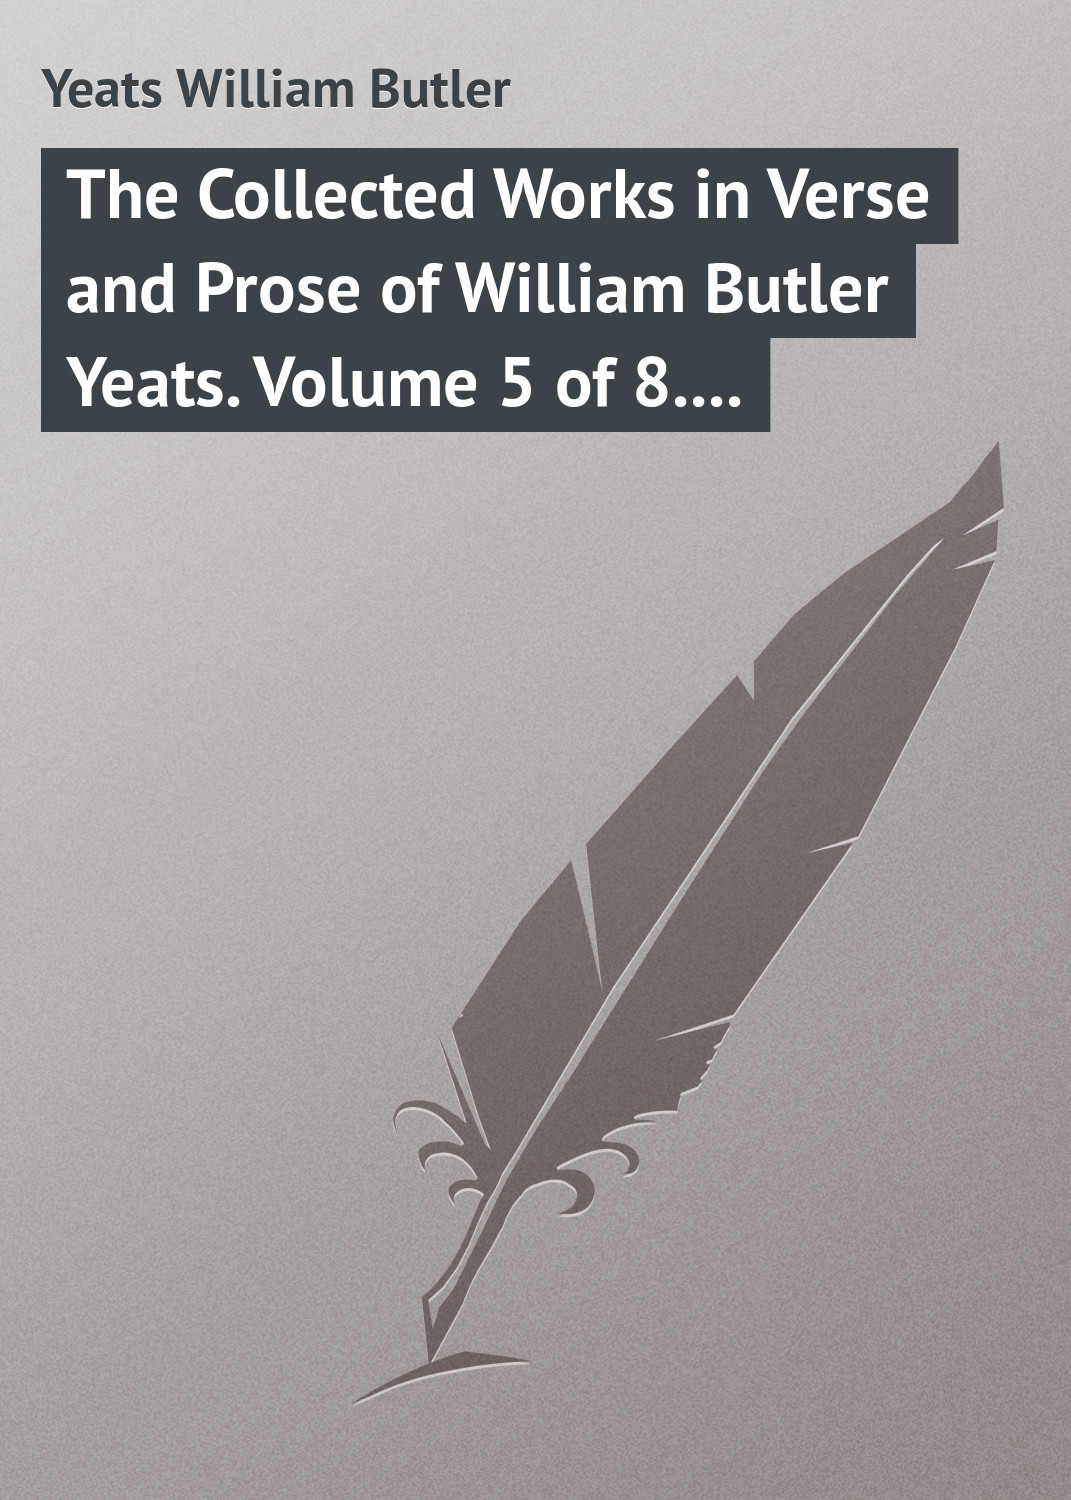 William Butler Yeats The Collected Works in Verse and Prose of William Butler Yeats. Volume 5 of 8. The Celtic Twilight and Stories of Red Hanrahan уильям батлер йейтс английская коллекция уильям батлер йейтс рассказы о рыжем ханрахане w в yeats stories of red hanrahan